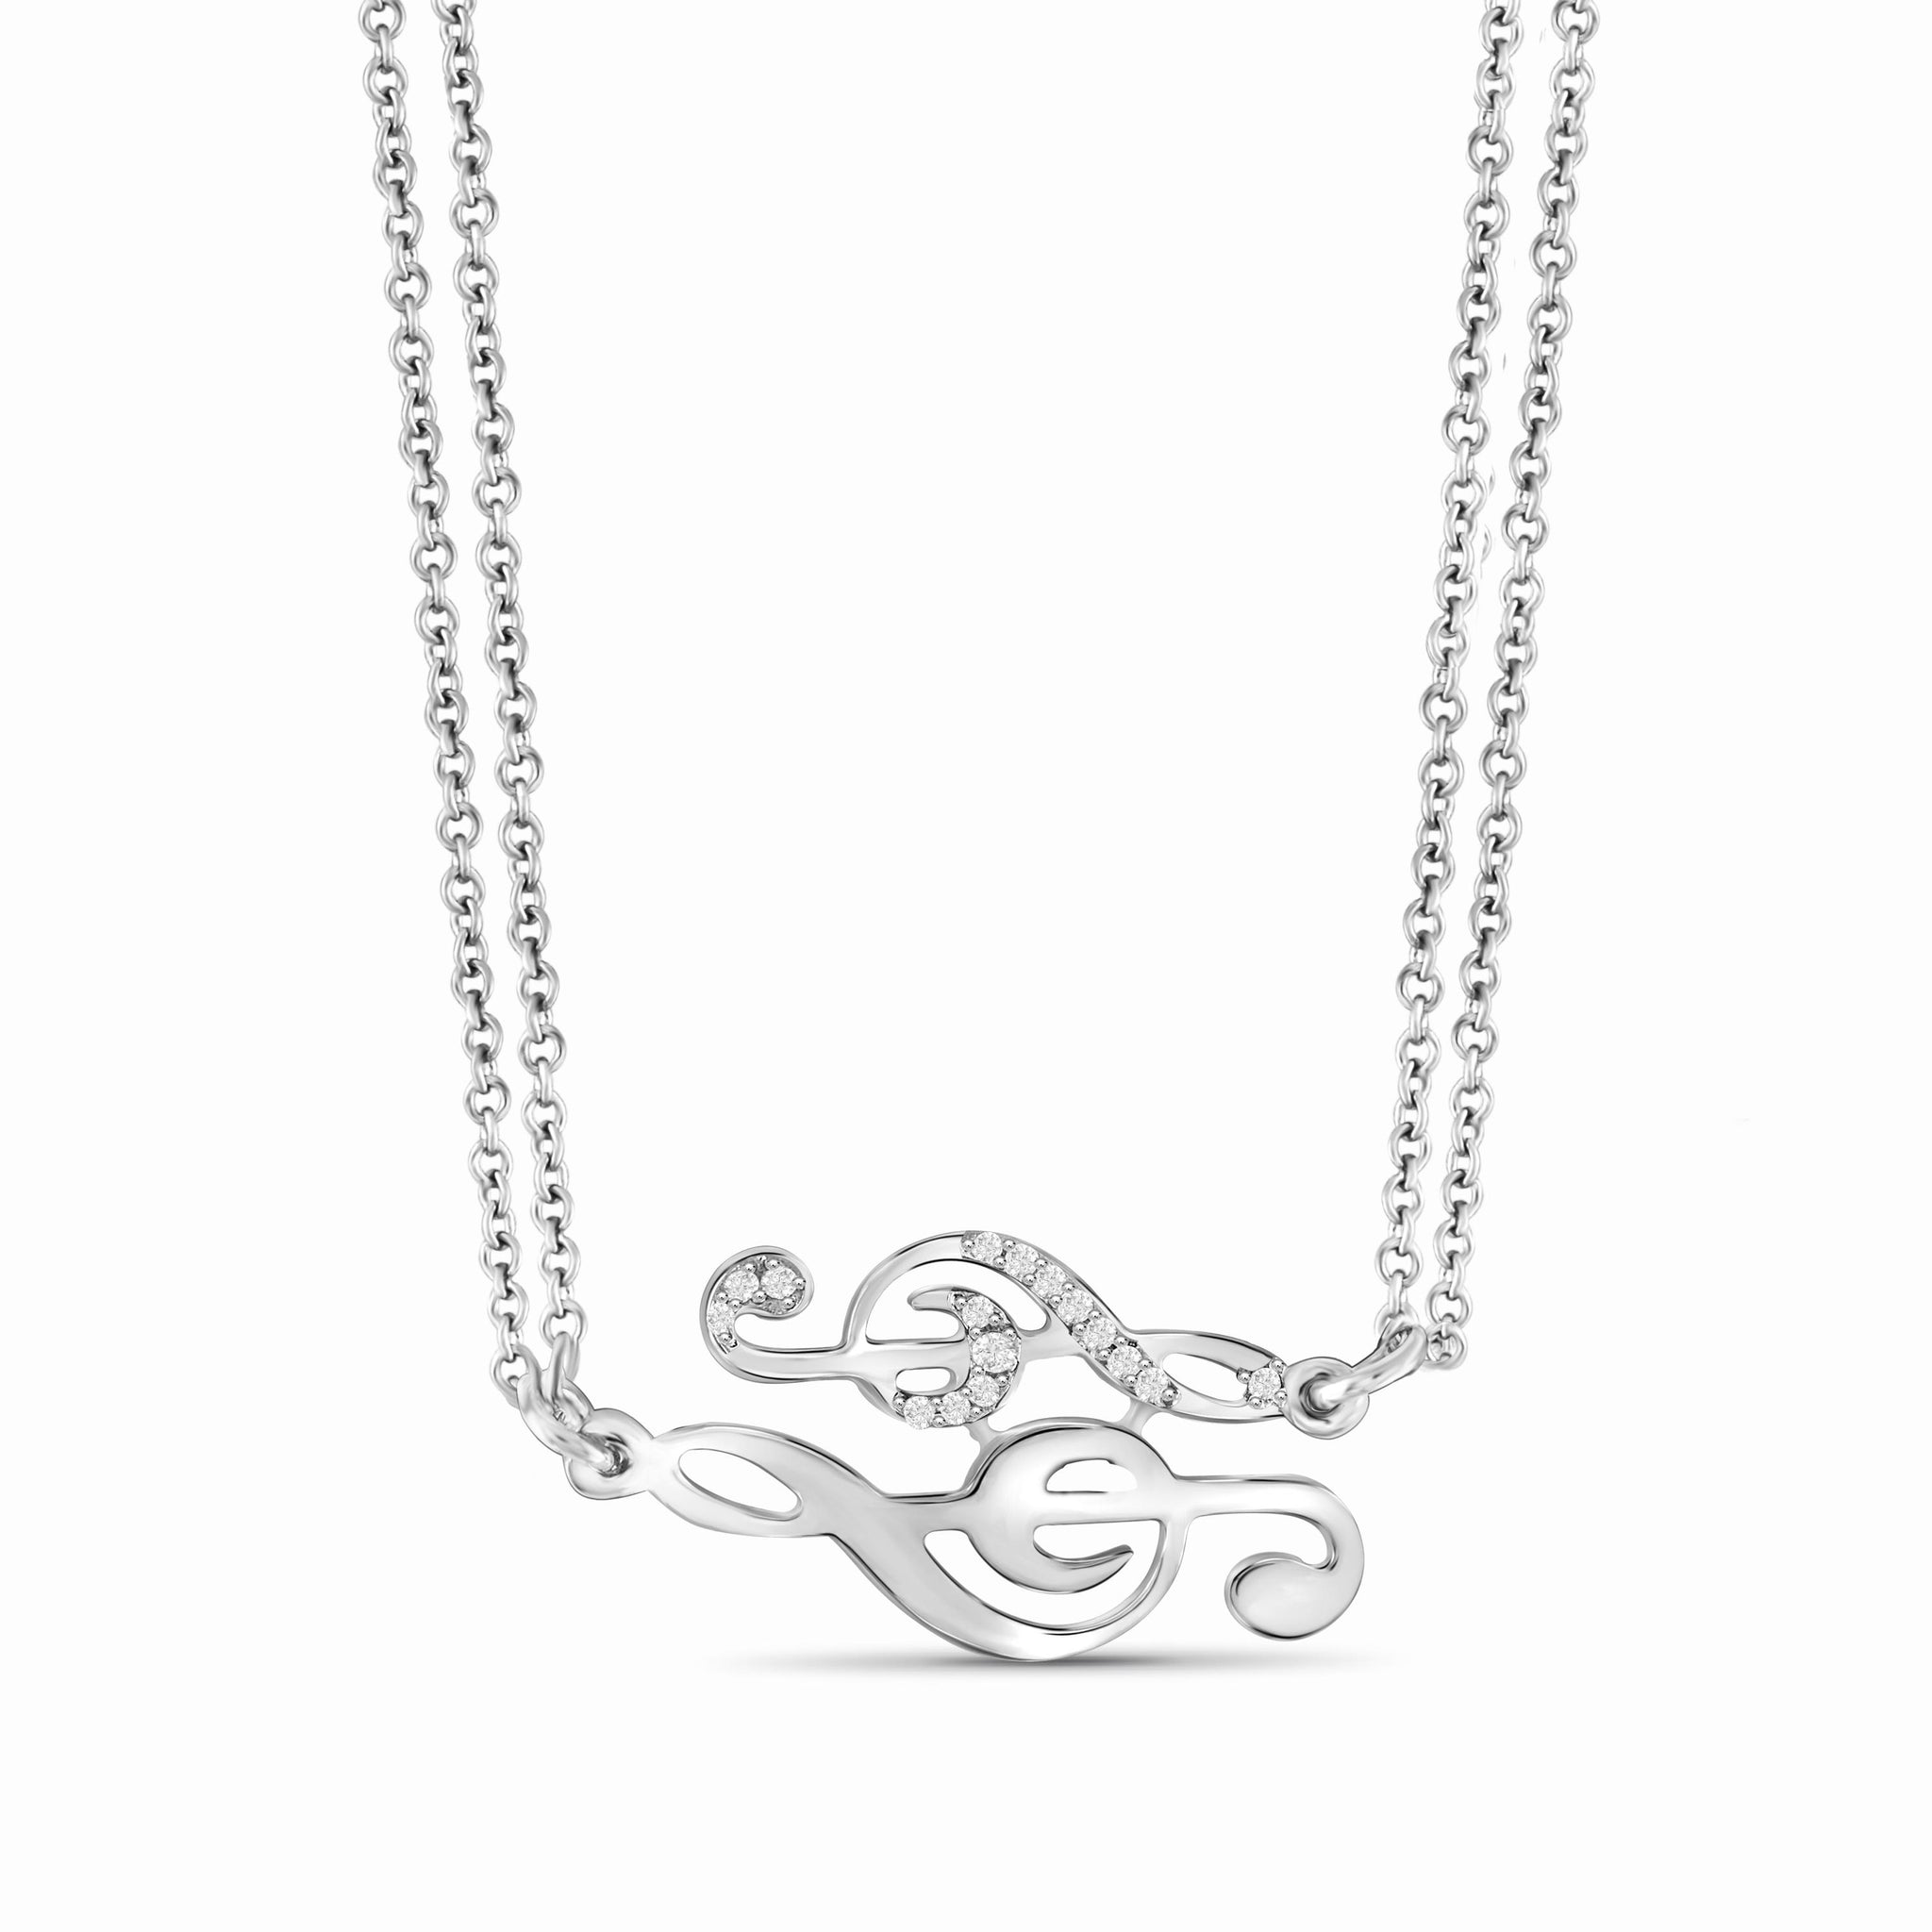 JewelersClub 1/20 Ctw White Diamond Sterling Silver Music Note Necaklace - Assorted Colors